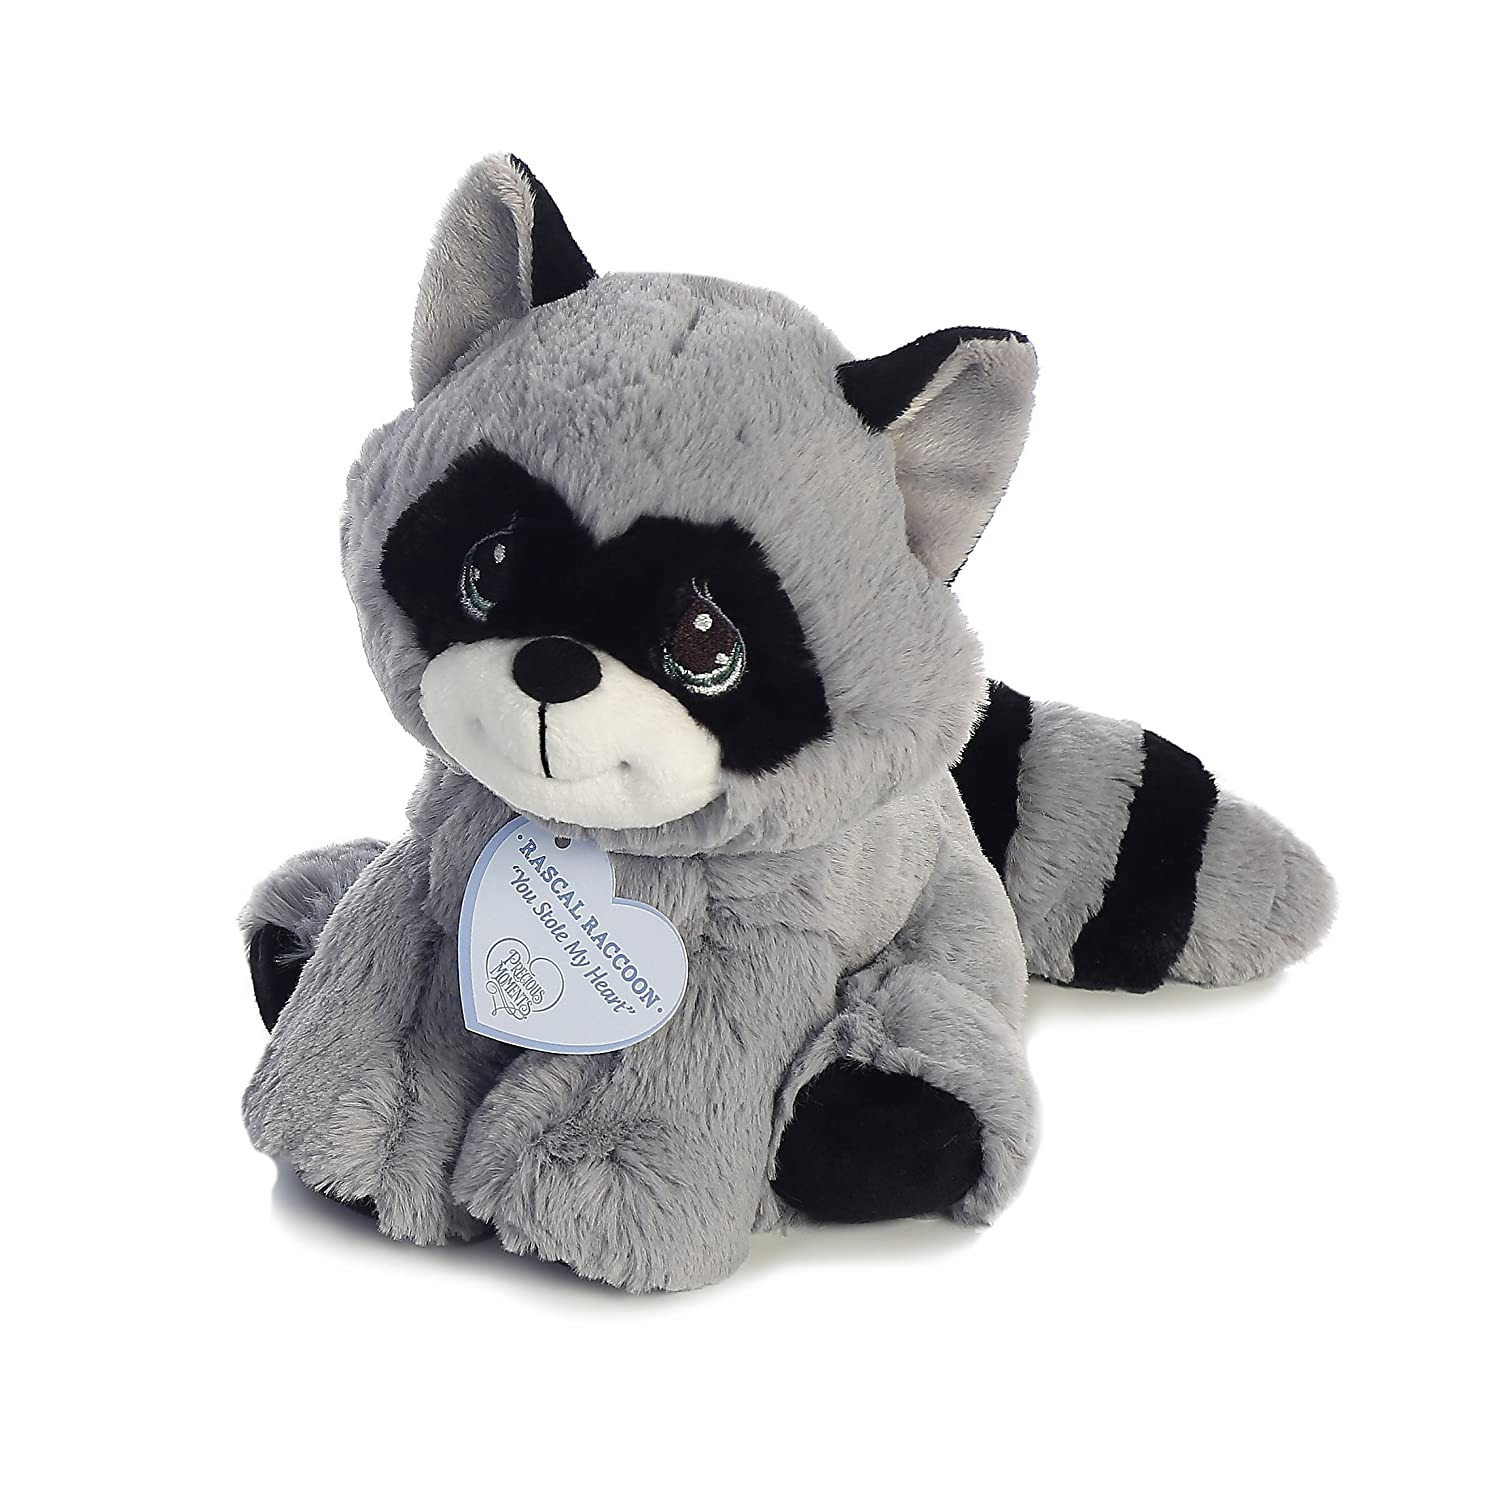 10de9c509af3 Amazon.com: Aurora 15705 World Plush, Small (6-14 in), Grey: Toys & Games